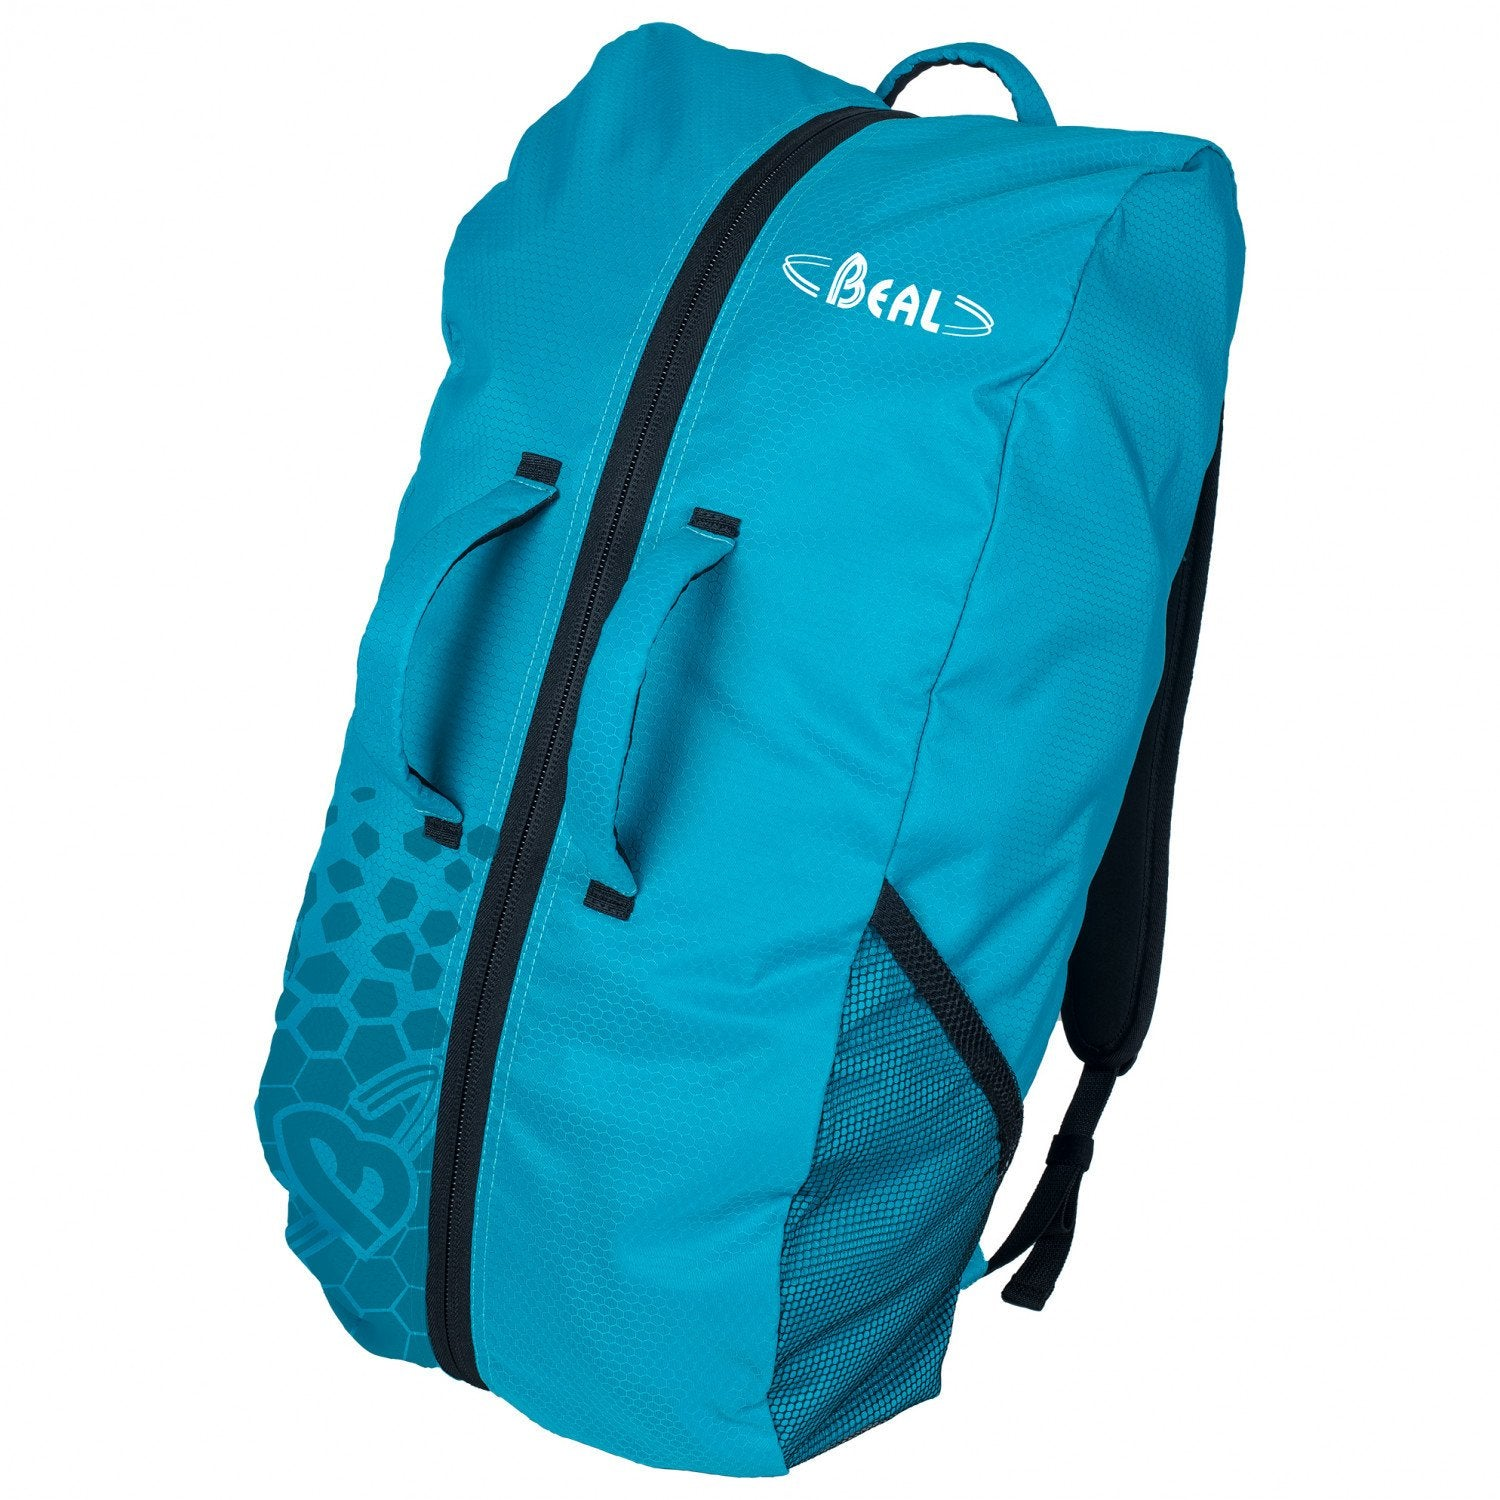 Beal Combi Rope Bag in Turquoise